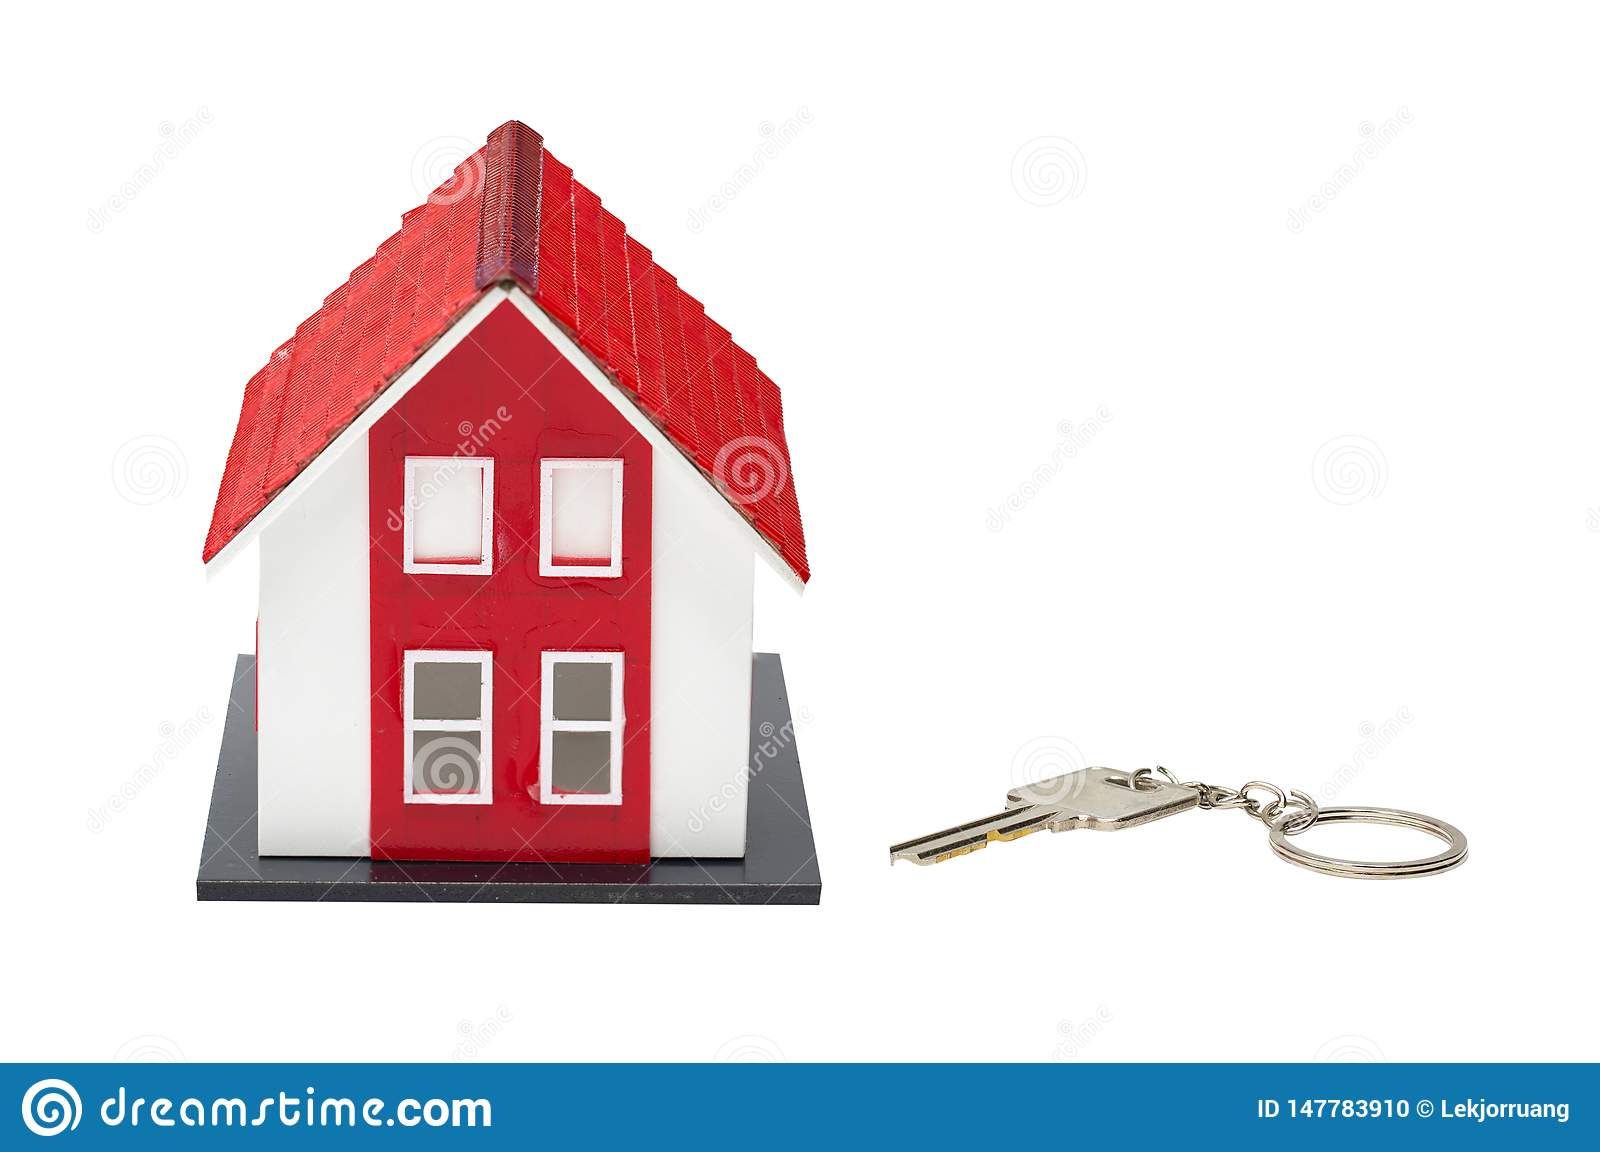 Red house model and house key isolated on white background